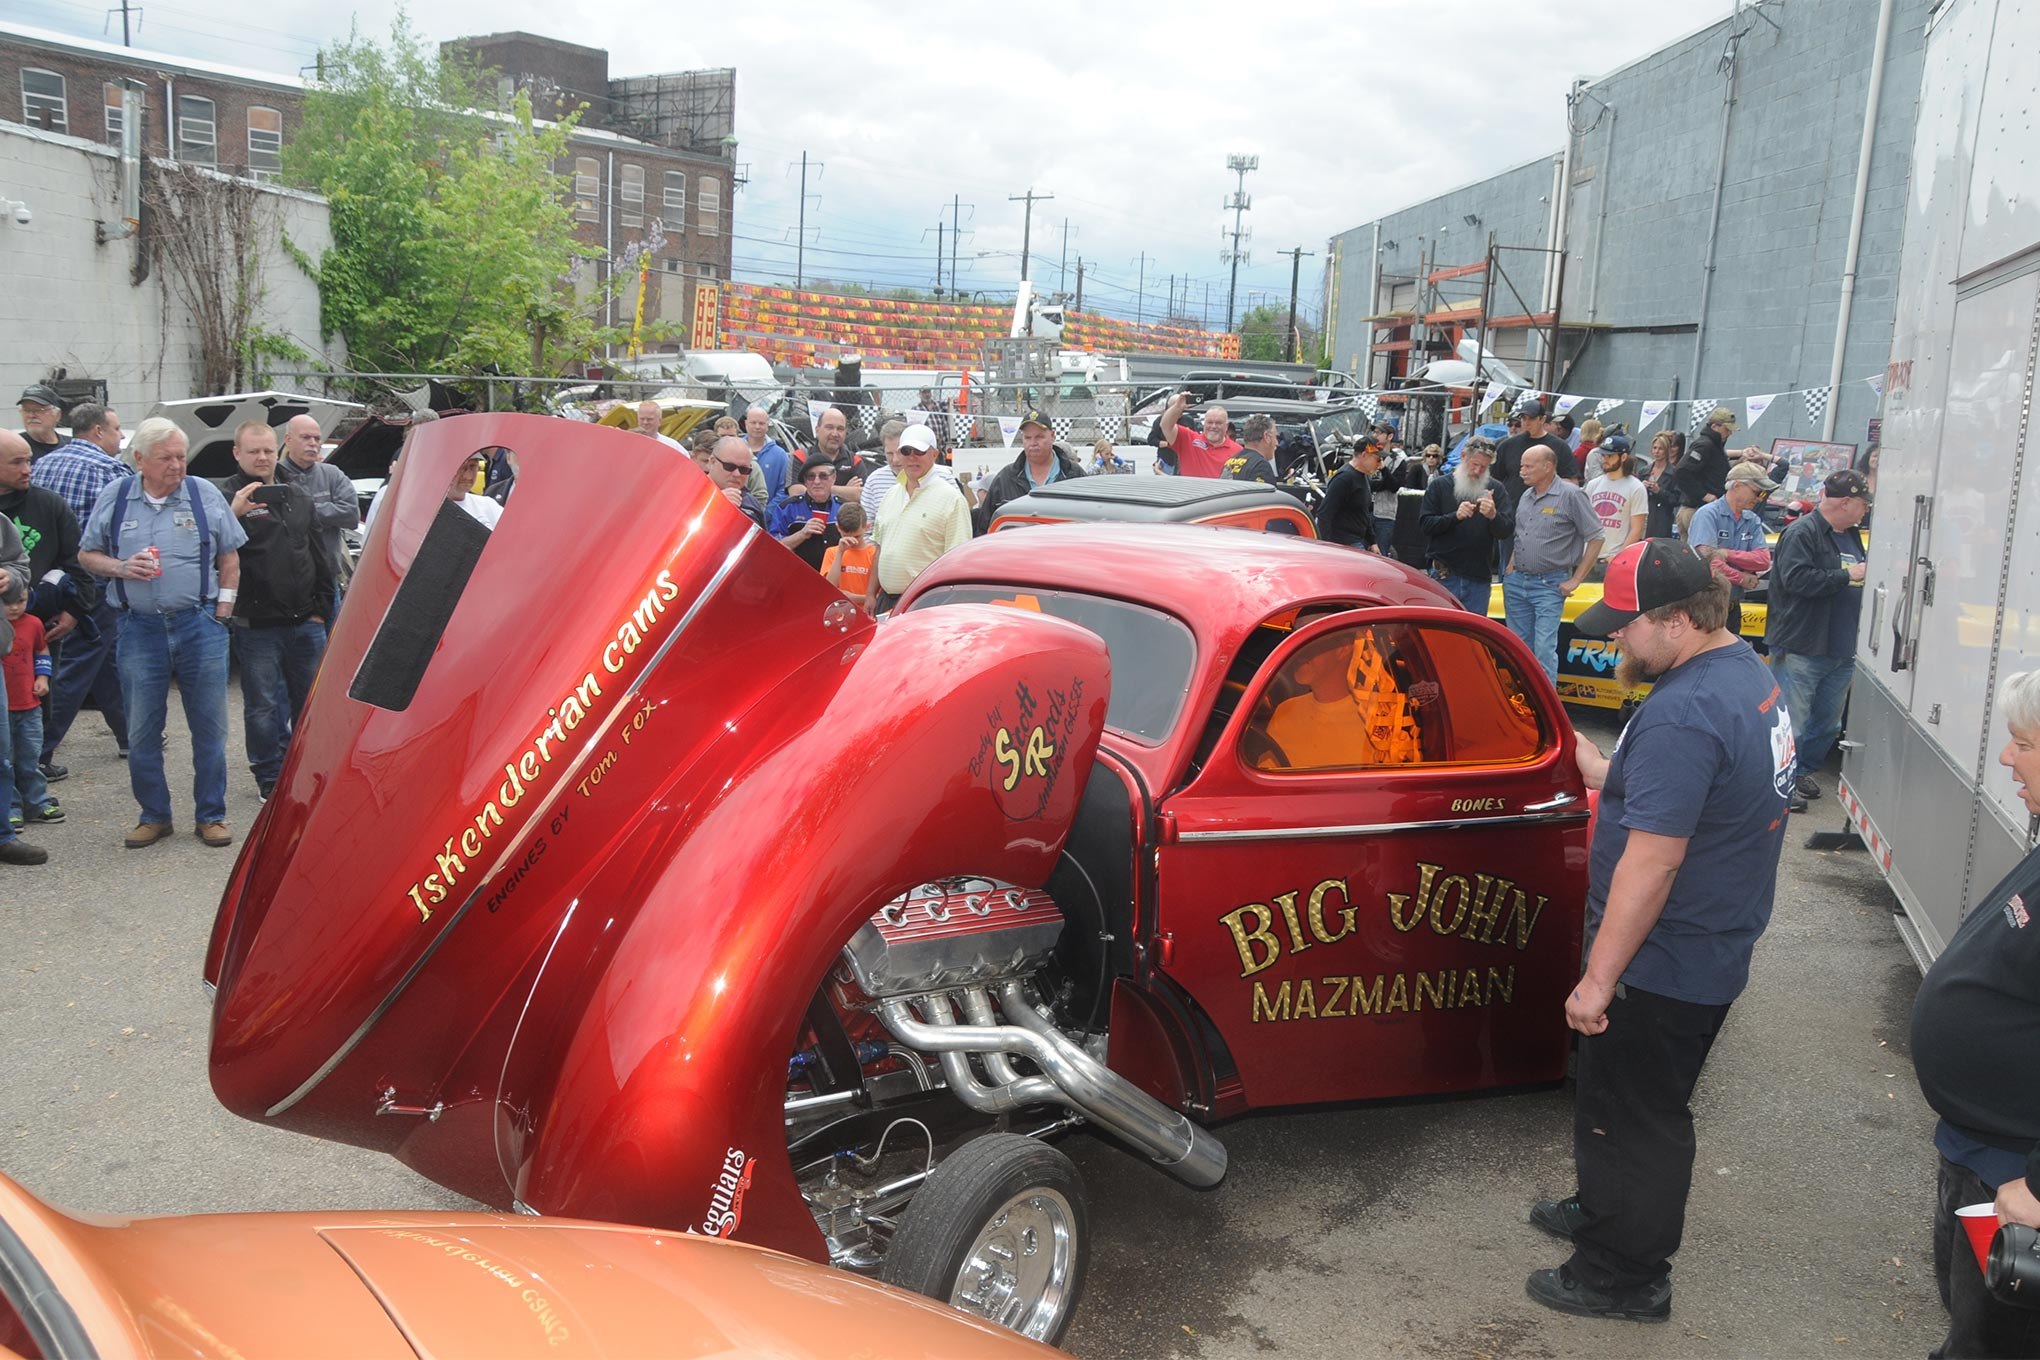 Jets to Gassers: Ken Hall, who normally drives a jet car but also from time to time can be found behind the wheel of a gasser, fires up the Big John Mazmanian tribute car, much to the delight of the 300 people who attended Rocky Pirrone's Open House.